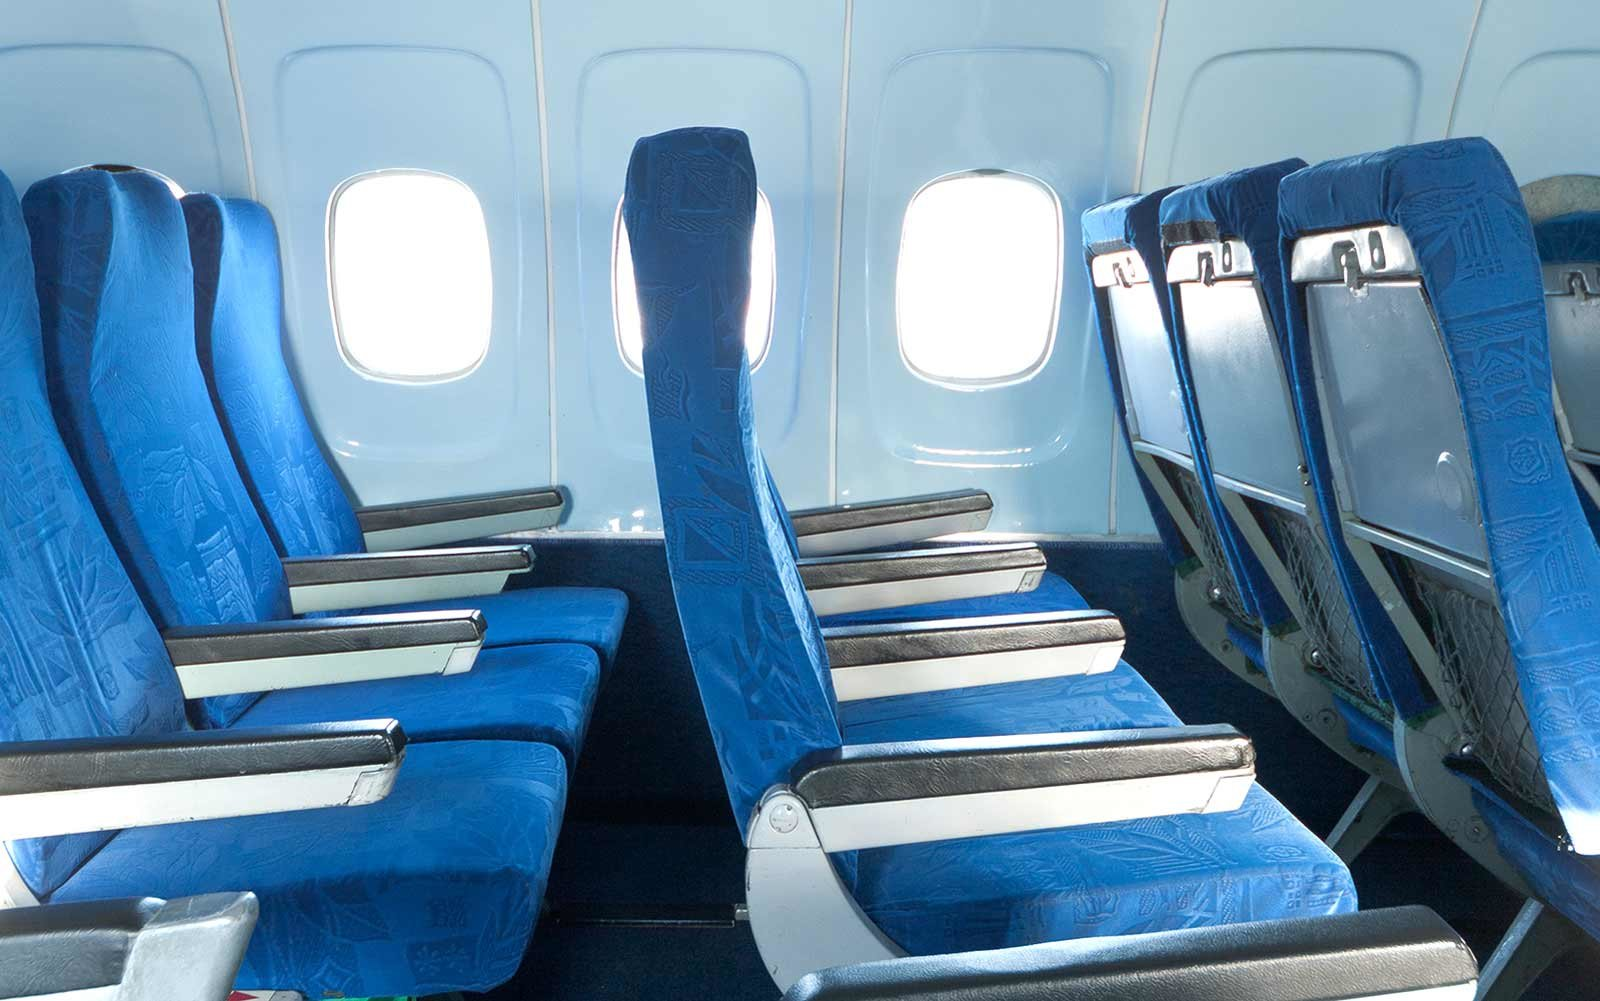 Why airplane seats don't line up with windows